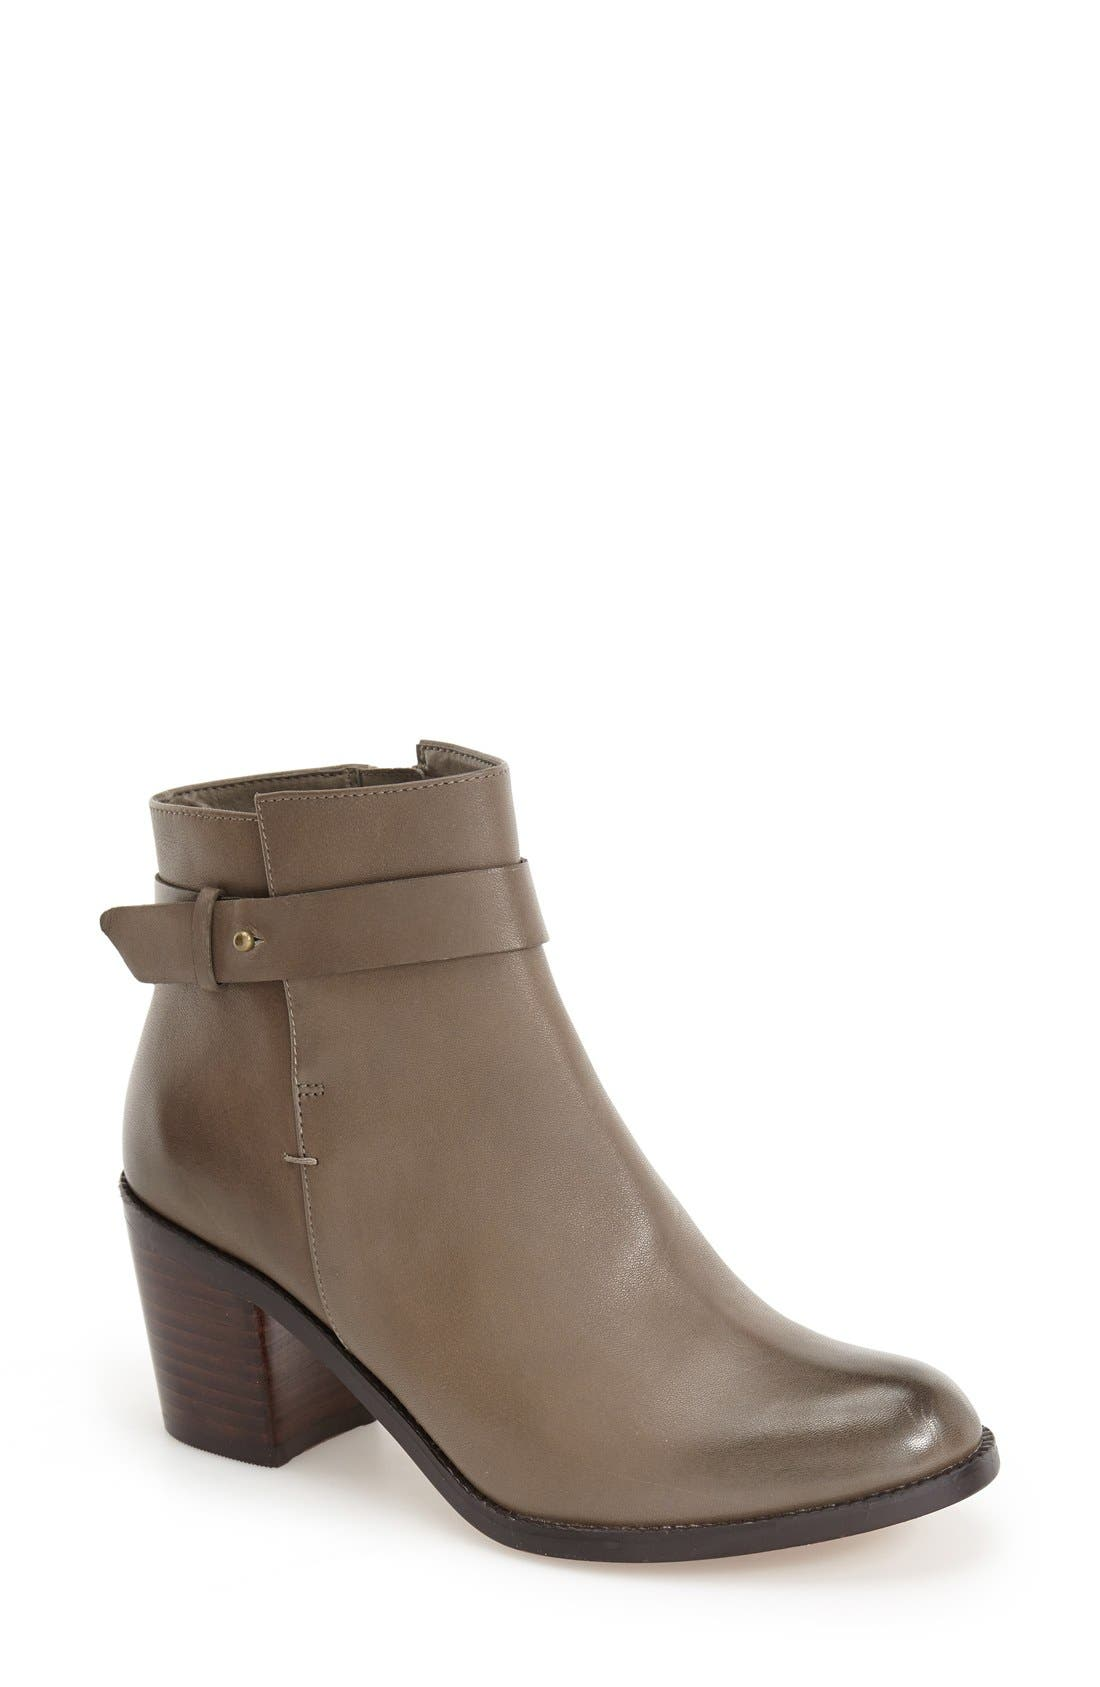 Alternate Image 1 Selected - Halogen® 'Glenna' Leather Ankle Bootie (Women)